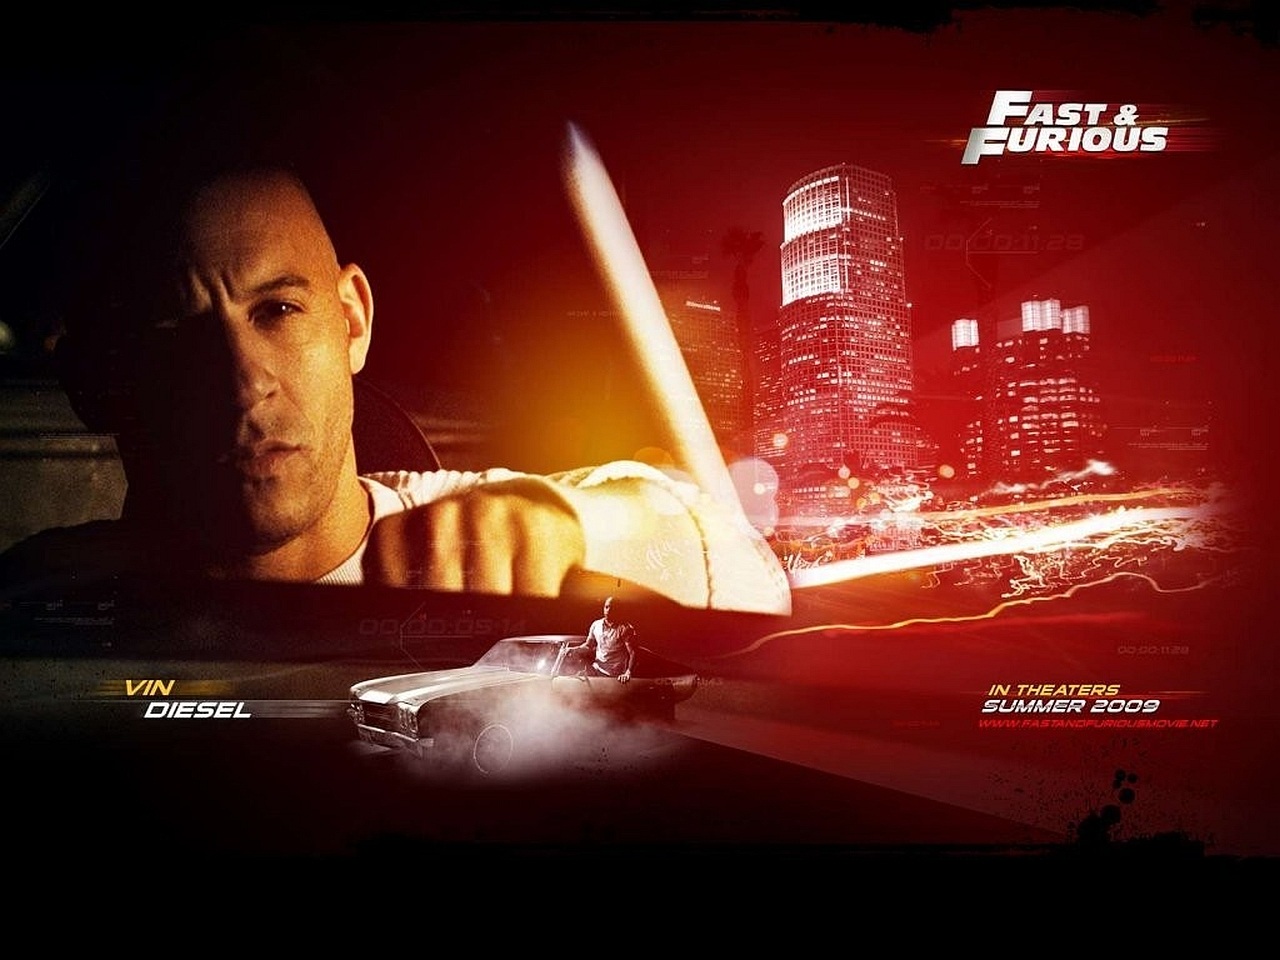 wallpaper HD vin diesel fast and furious 7